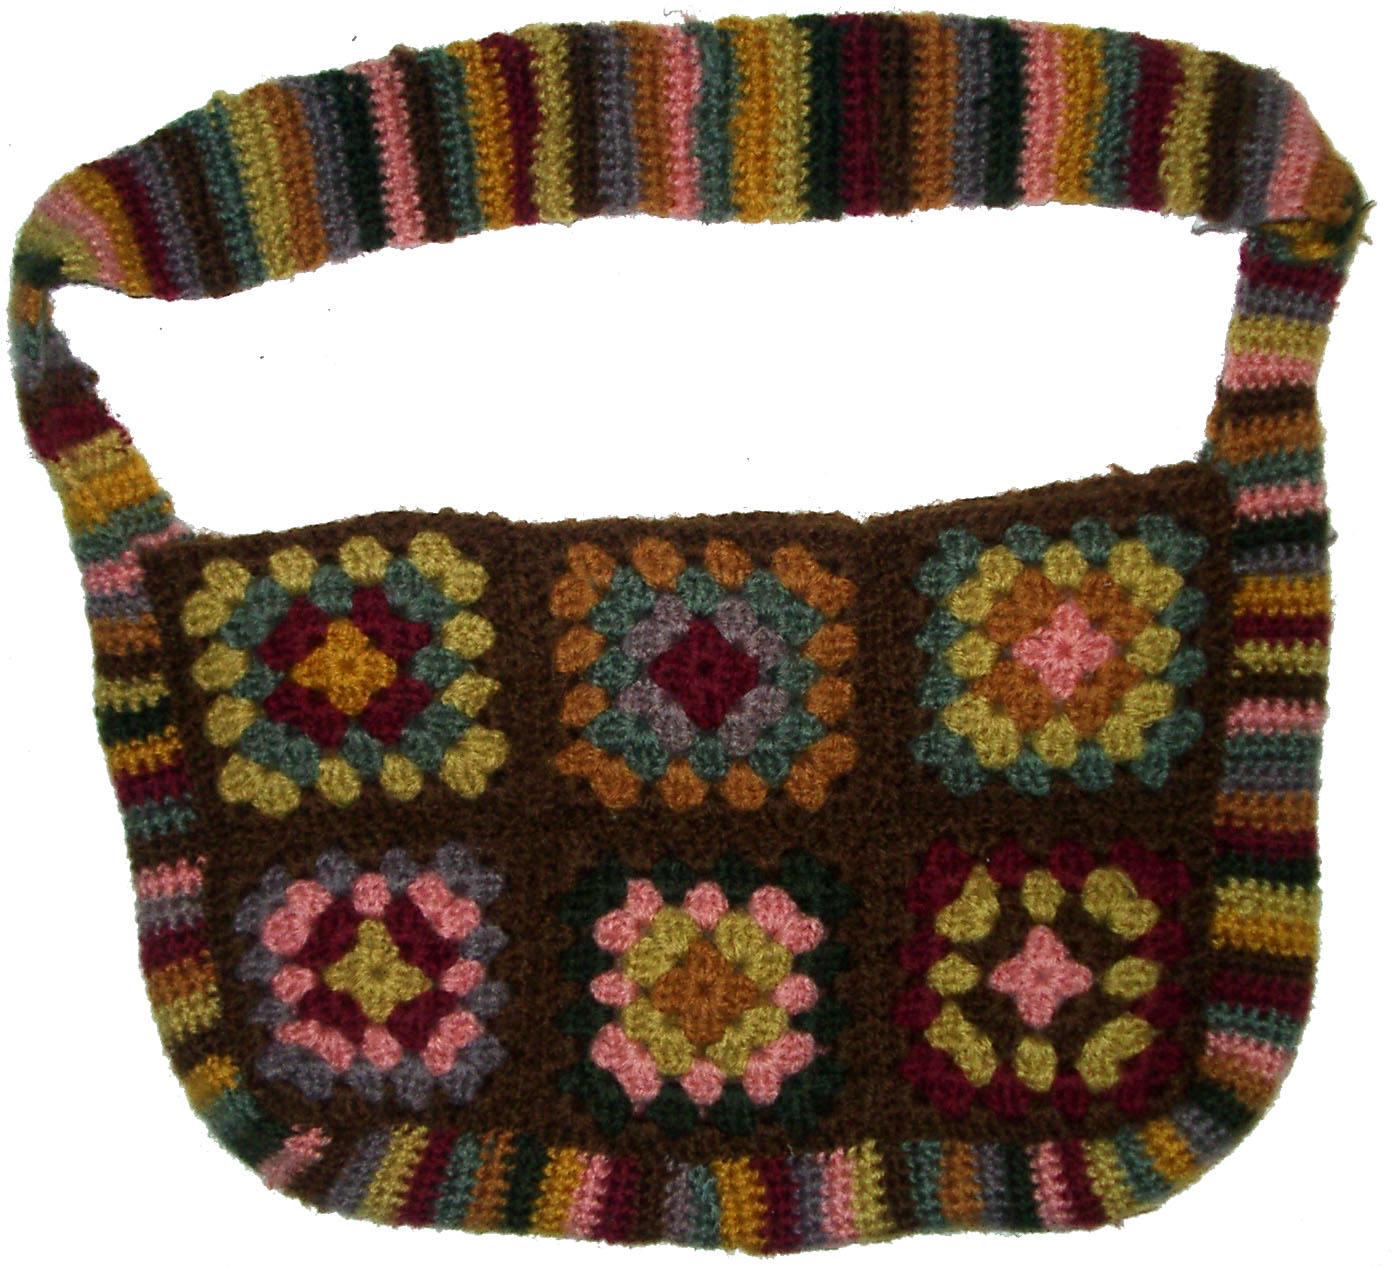 Crochet Granny Square Purse Pattern : Just a Stitch Away: Crocheted Granny Square Bag